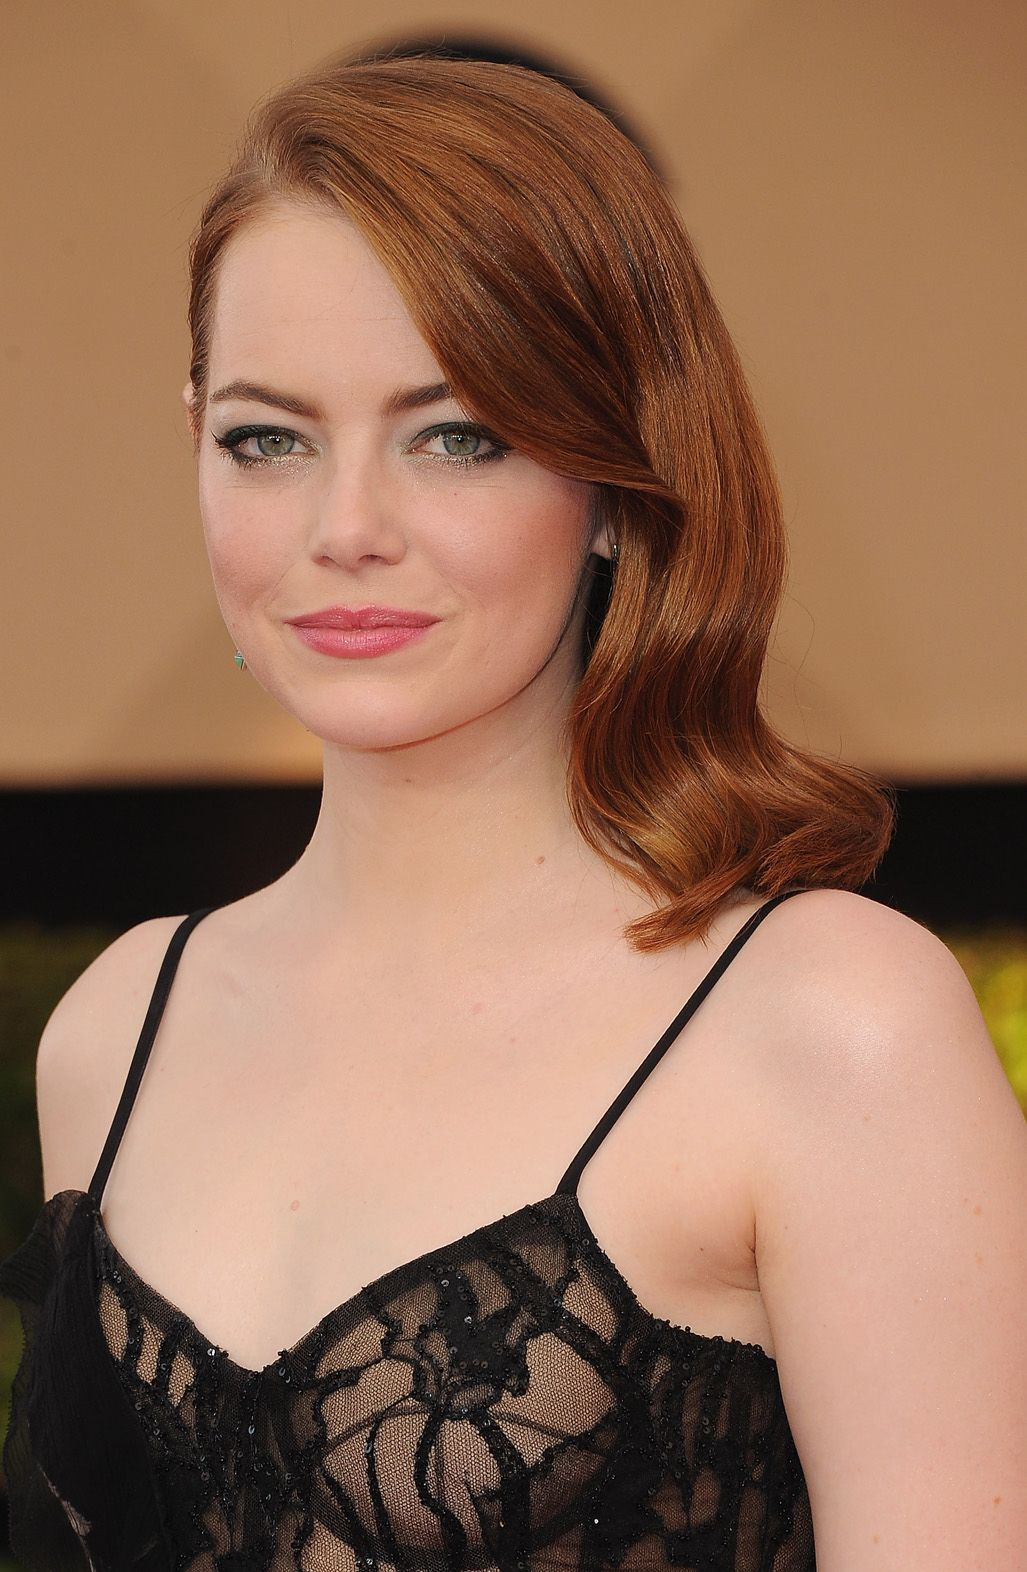 Emma Stone | Emma Stone | Pinterest | Emma stone, Stone and Actresses